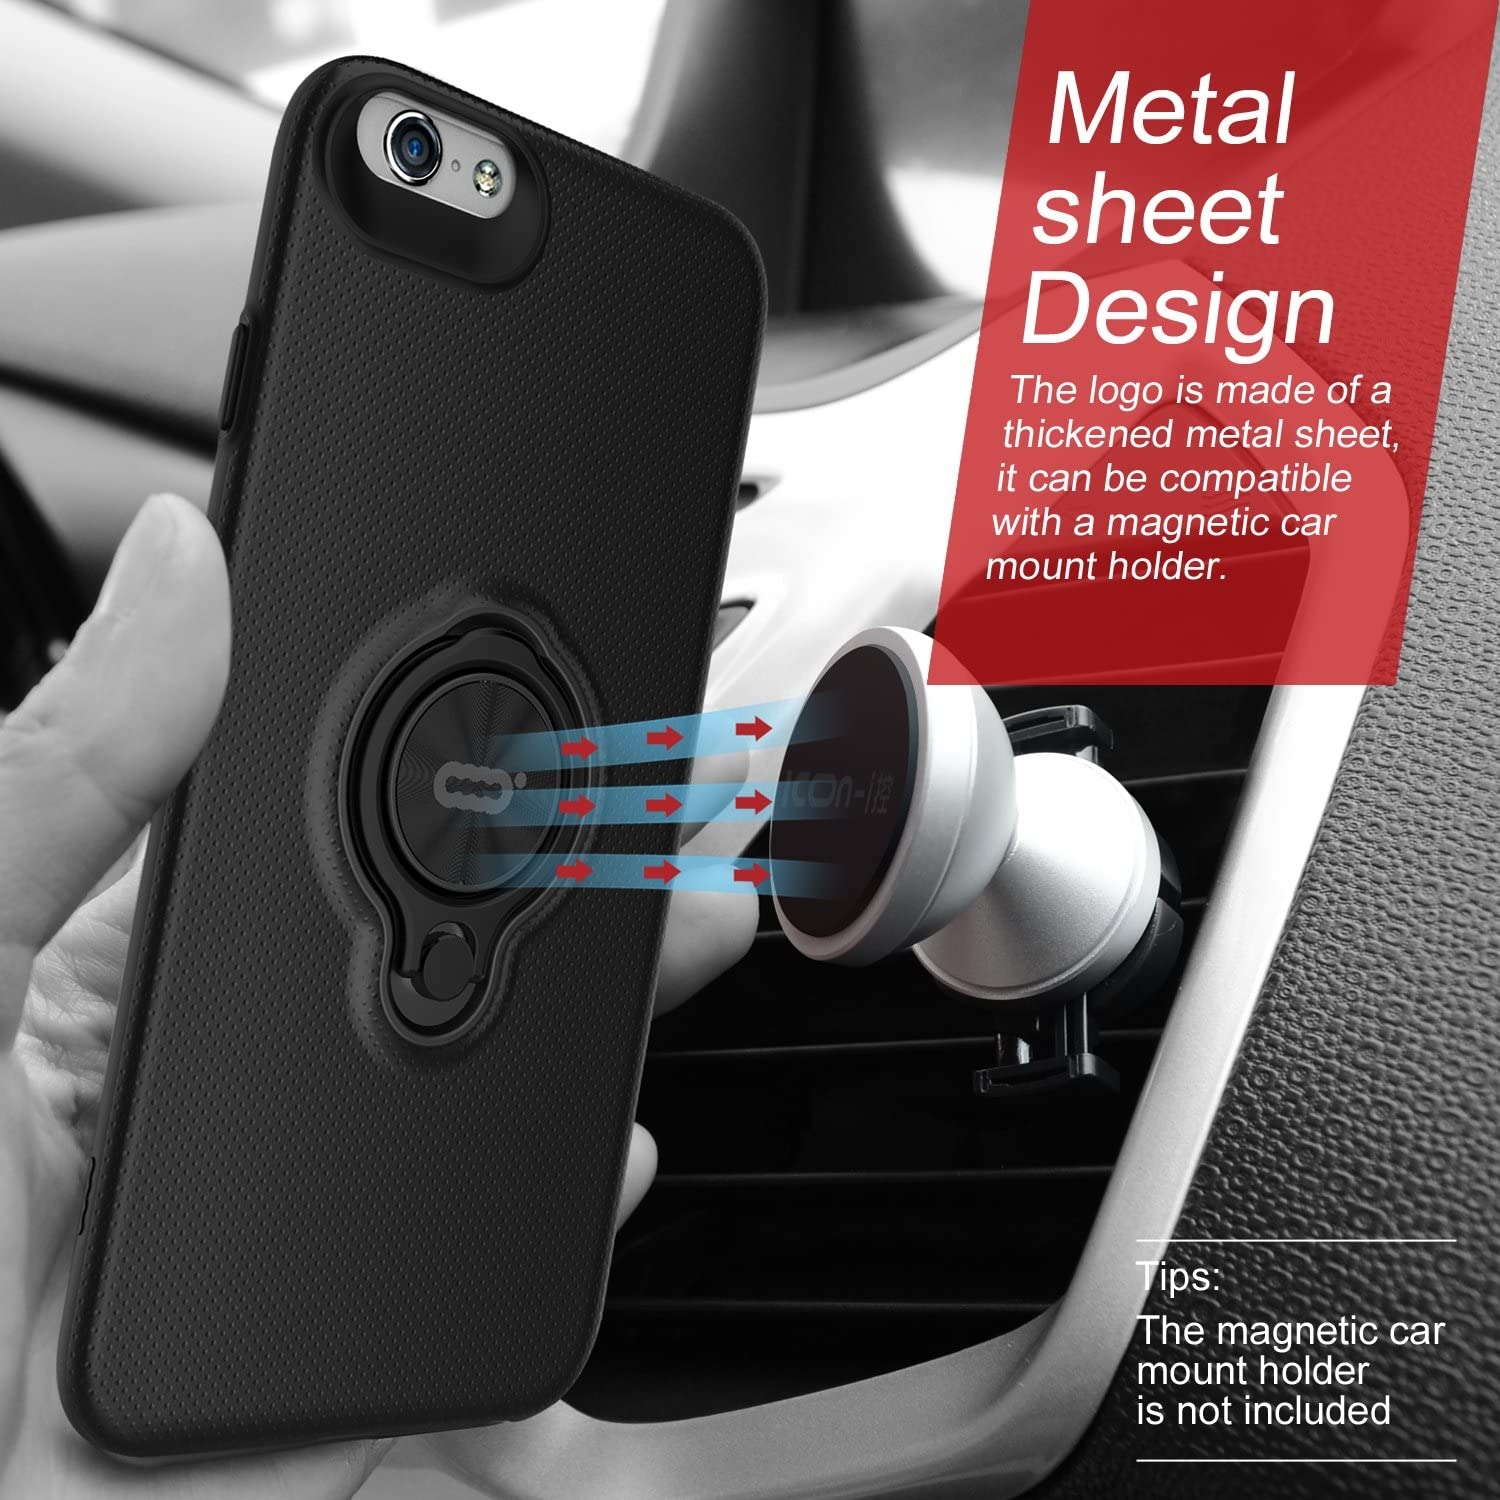 xhorizon TM FLK Rotating Ring Kickstand Holder Magnetic Car Mount Phone Holder Compatible Case for iPhone 6 Plus // iPhone 6S Plus 201608300241C Rose-gold Case for iPhone 6//6S Plus 5.5 Upgraded